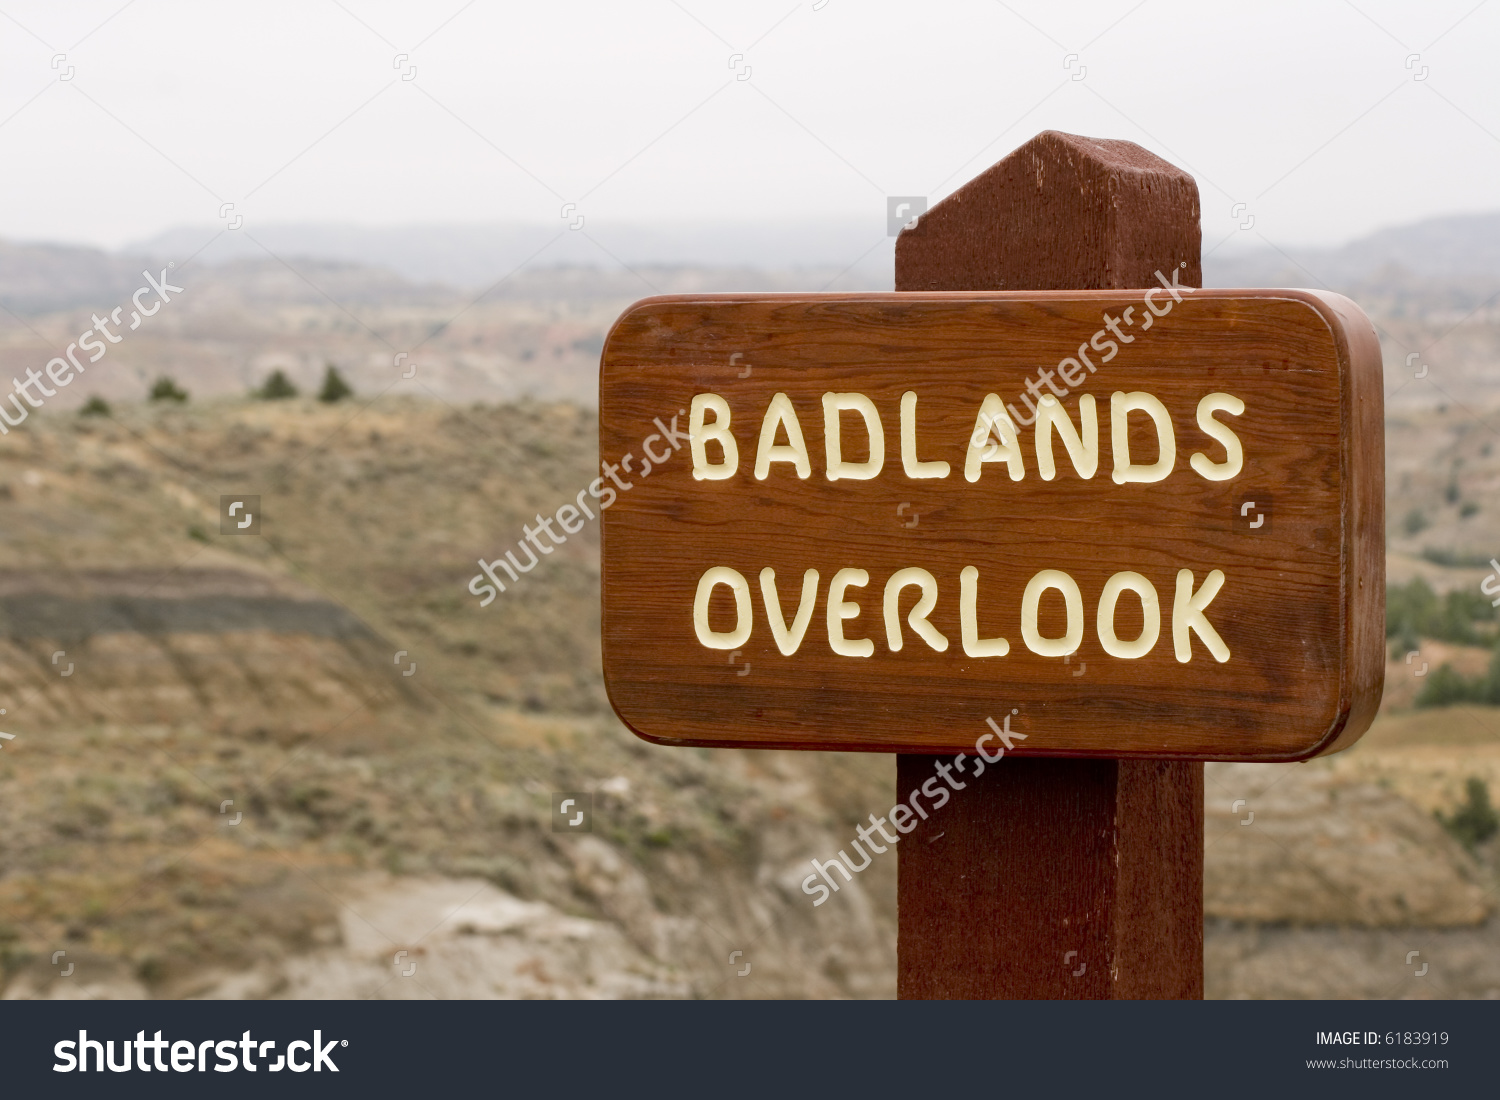 North Dakota Badlands Overlook Stock Photo 6183919 : Shutterstock.